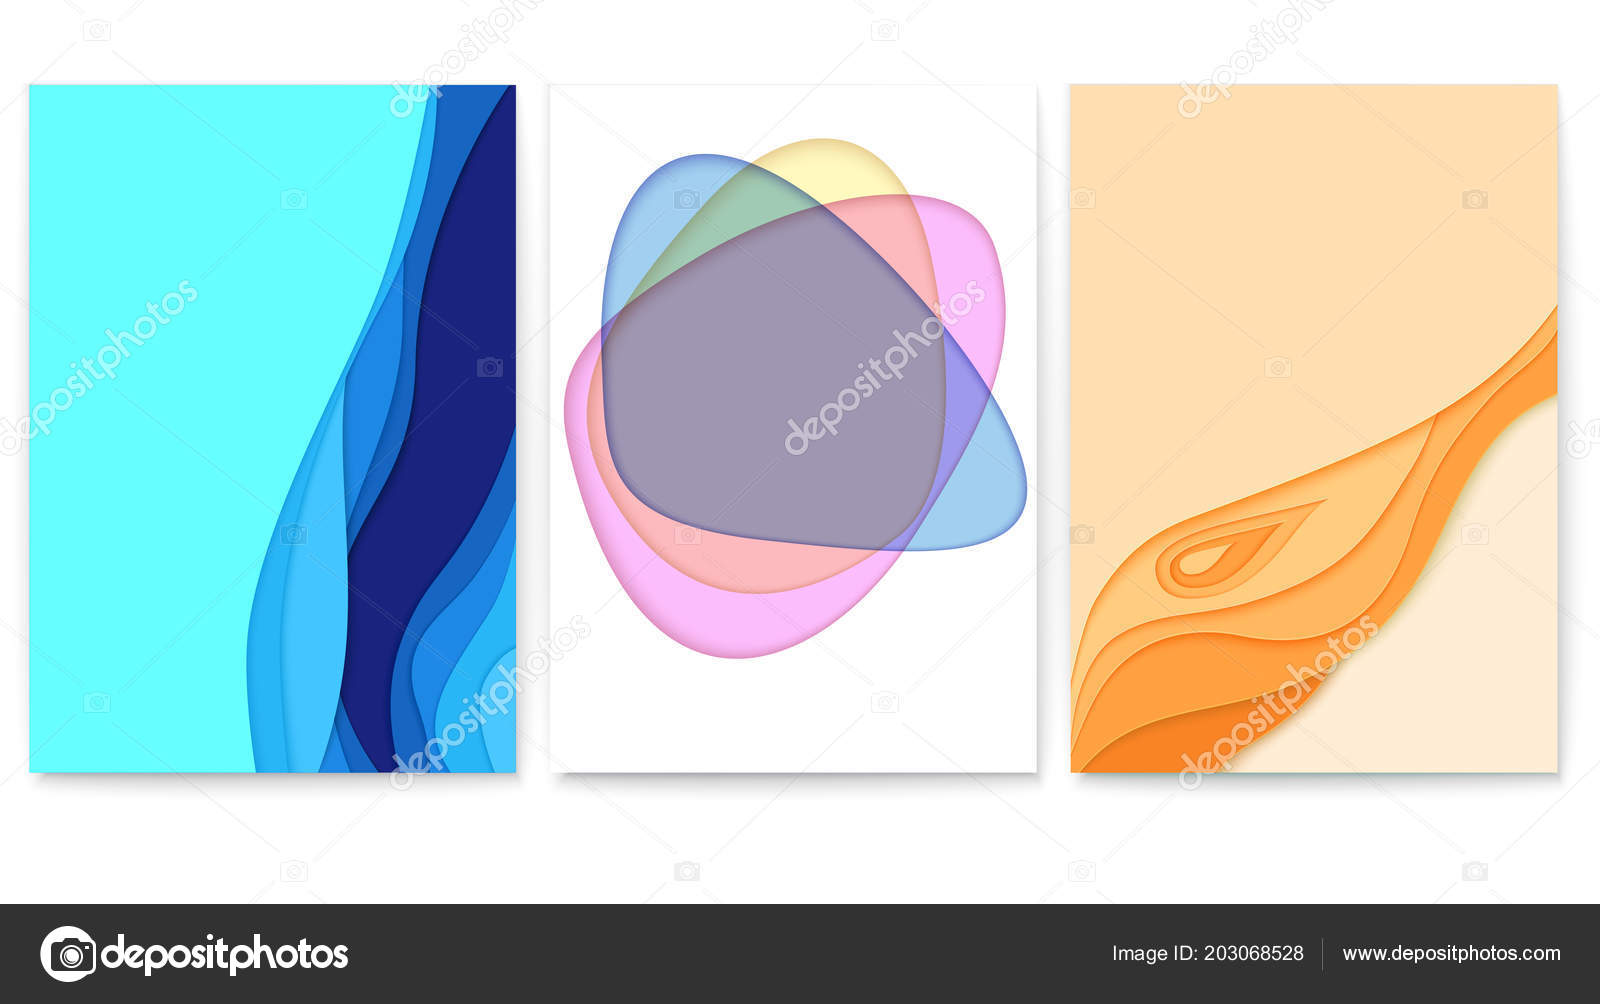 Vector Layout With Cut Out Paper Shapes Poster Carving Art Wavy Forms Template Of For Cover Business Card Flyers 3D Illustration